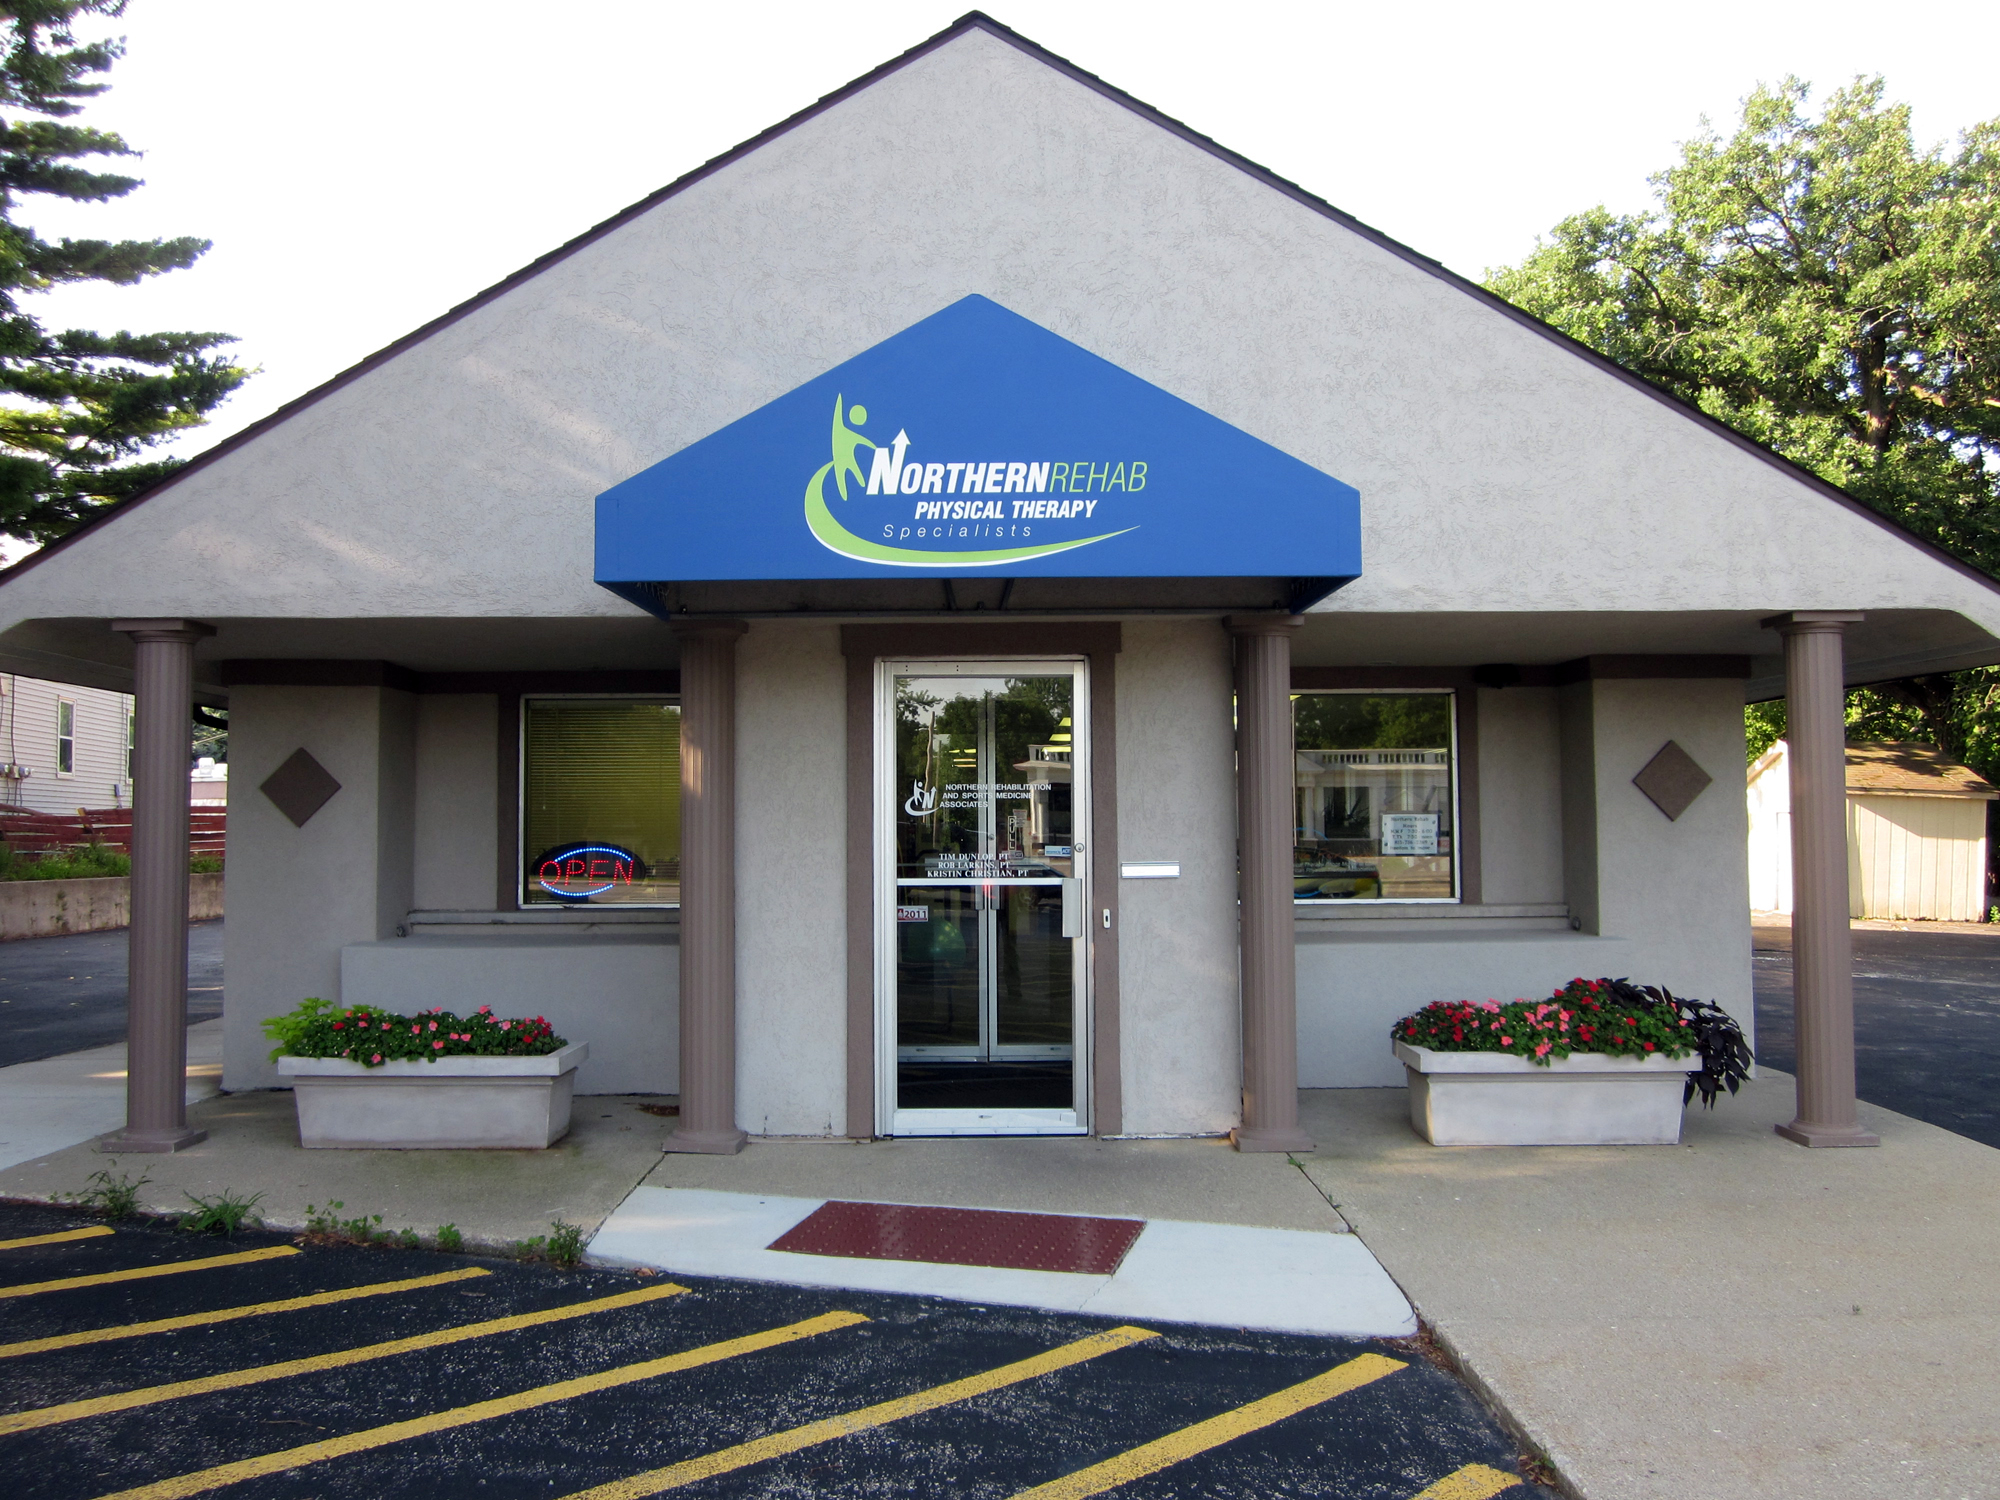 Northern Rehab's DeKalb Lincoln Hwy location